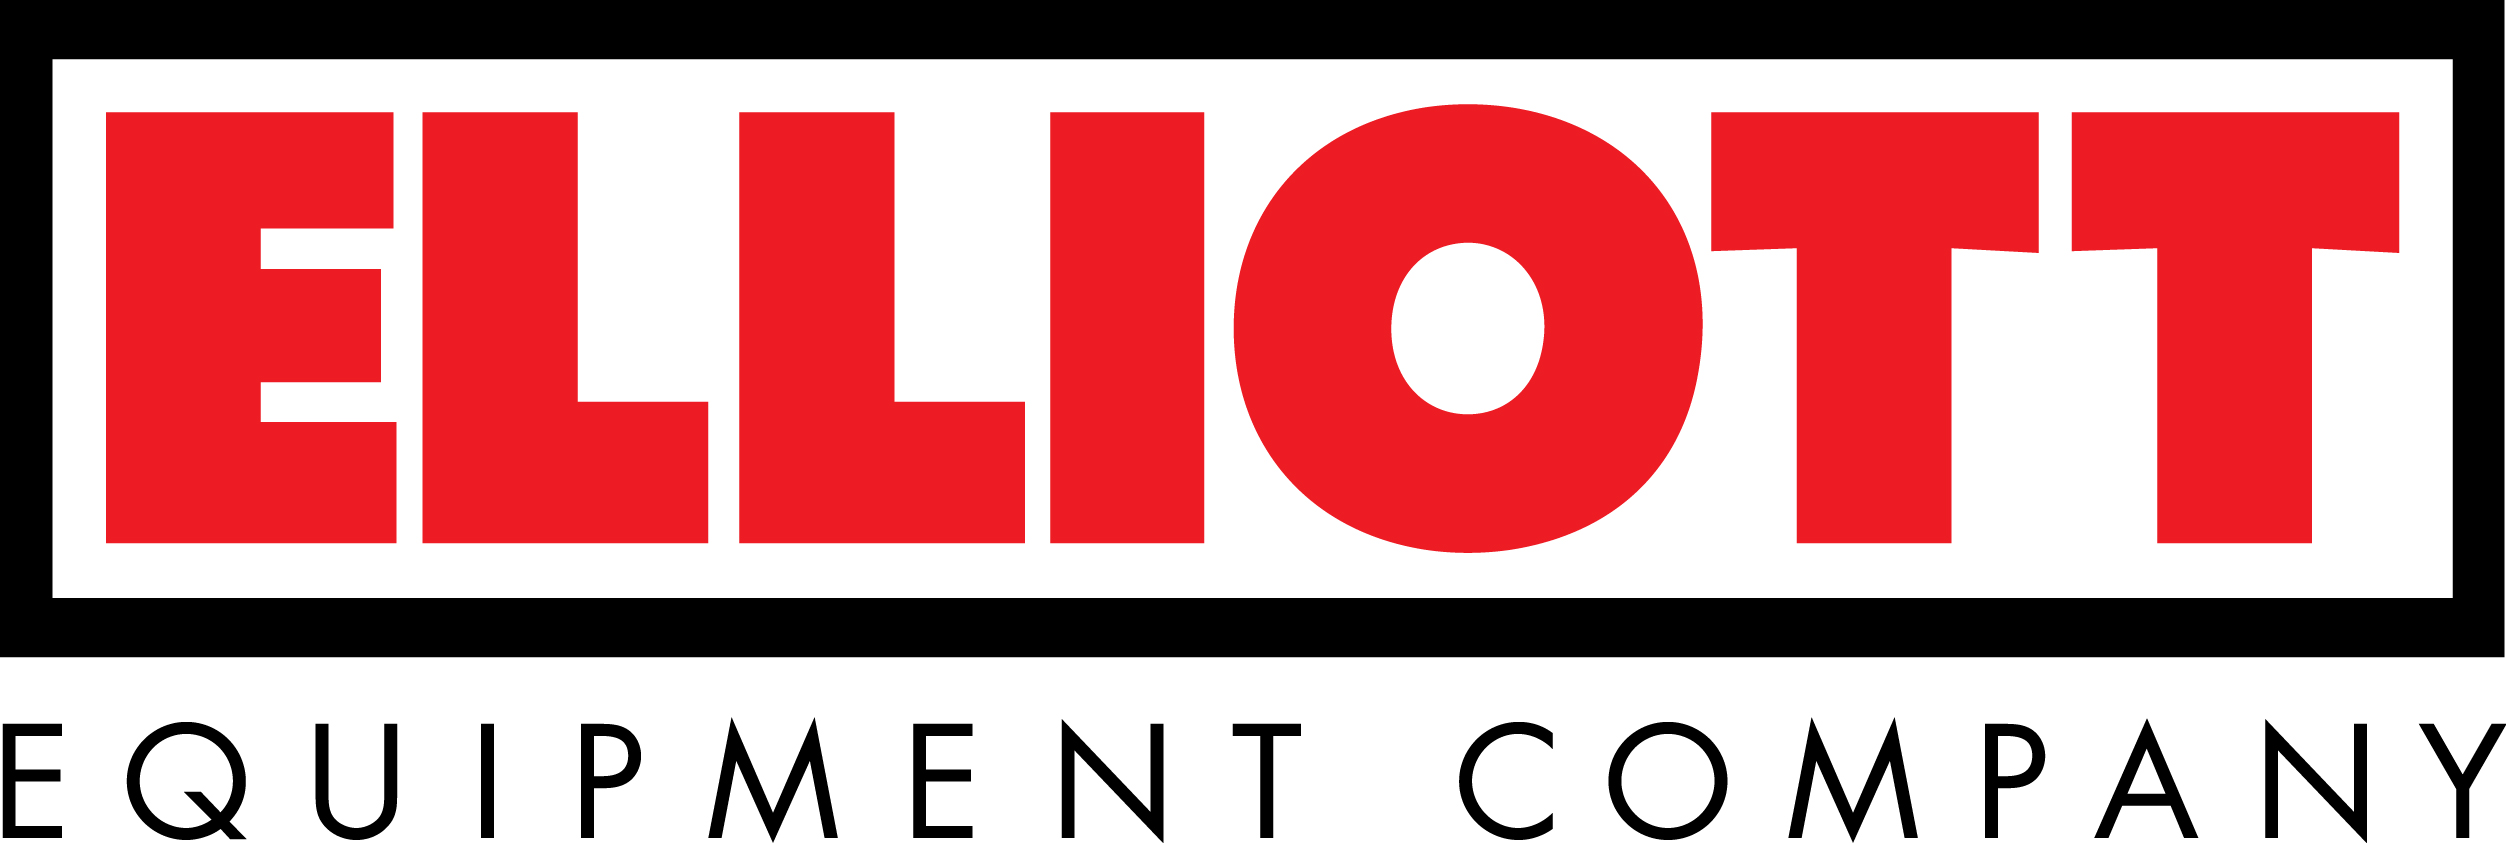 Elliott Equipment Co. in Omaha, NE. Telescopic truck-mounted cranes & aerial work platforms.